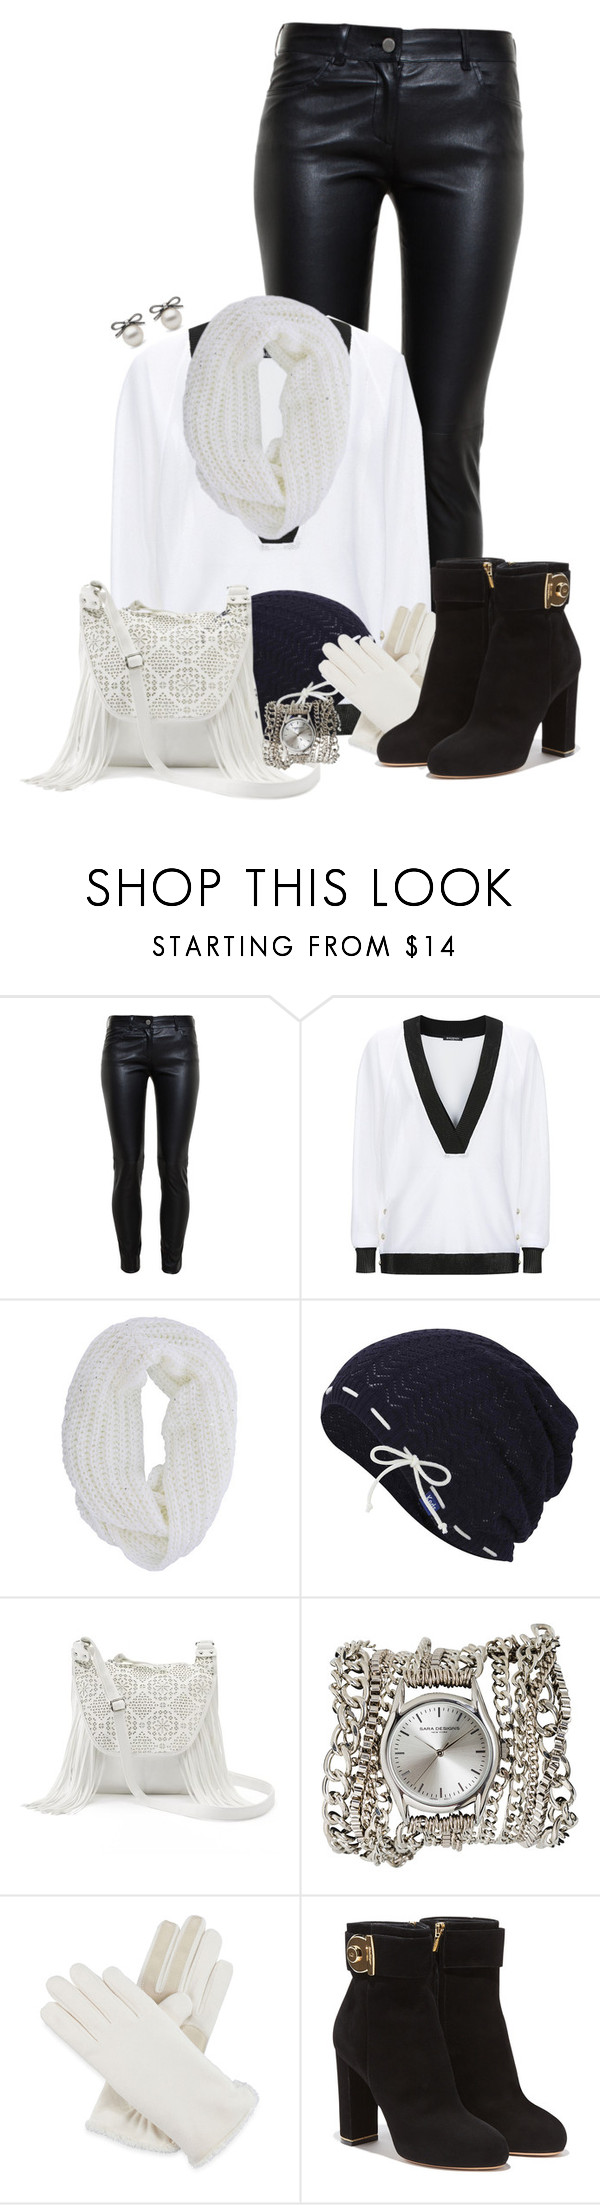 """Black and white"" by md-louber ❤ liked on Polyvore featuring Balenciaga, Balmain, Keds, Candie's, Sara Designs, Isotoner and Salvatore Ferragamo"